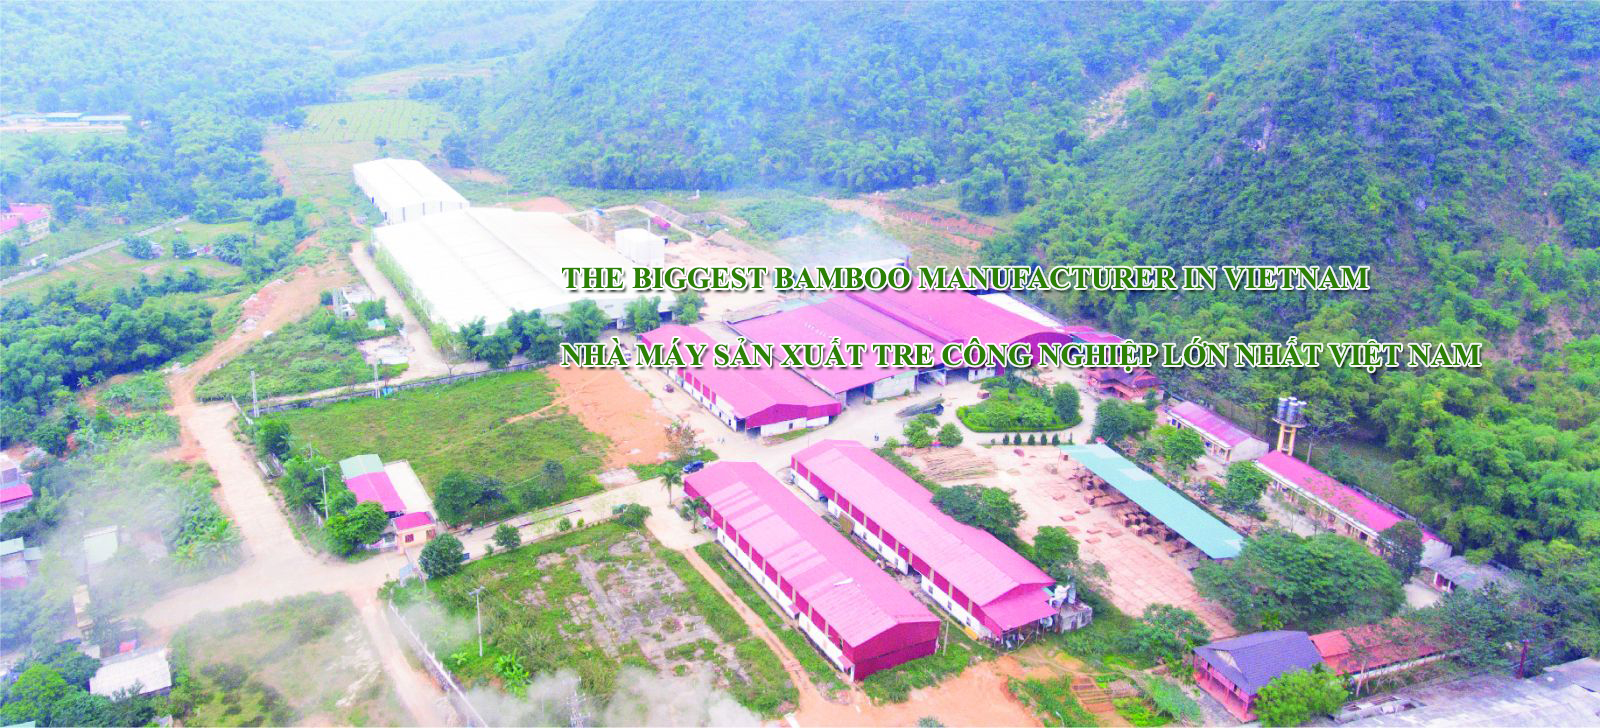 The biggest bamboo factory in Vietnam